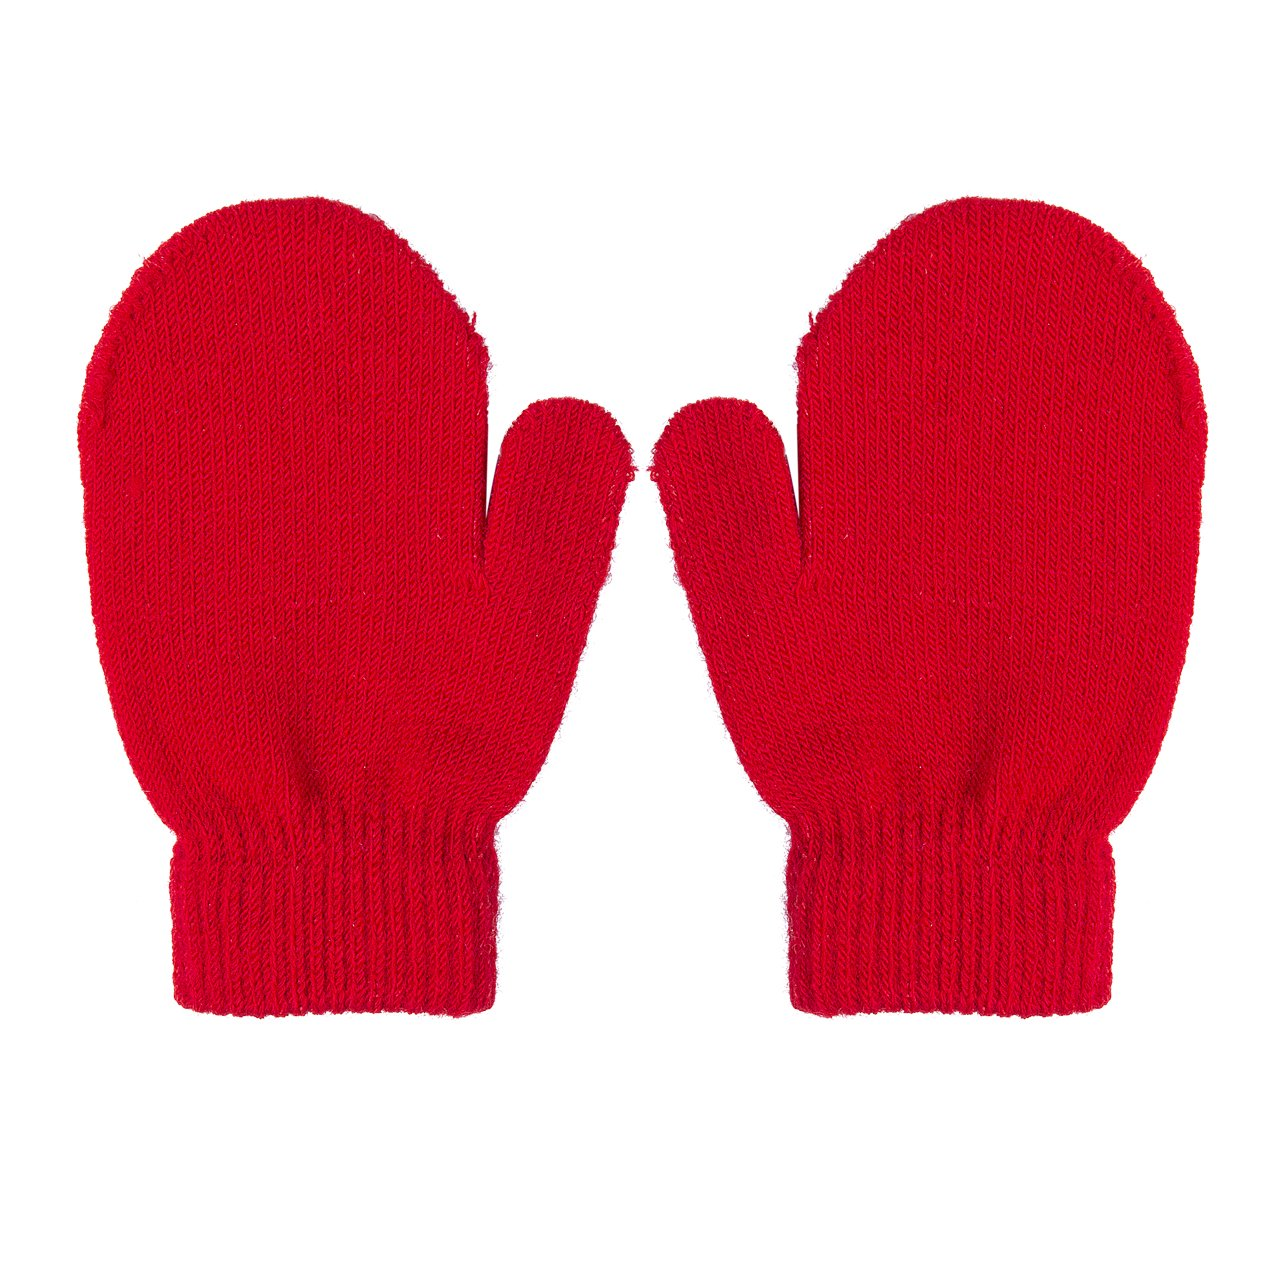 Toddlers Girls Boys Gloves 1 Pair Winter Kids Warm Knitting Gloves Stretch Magic Mittens